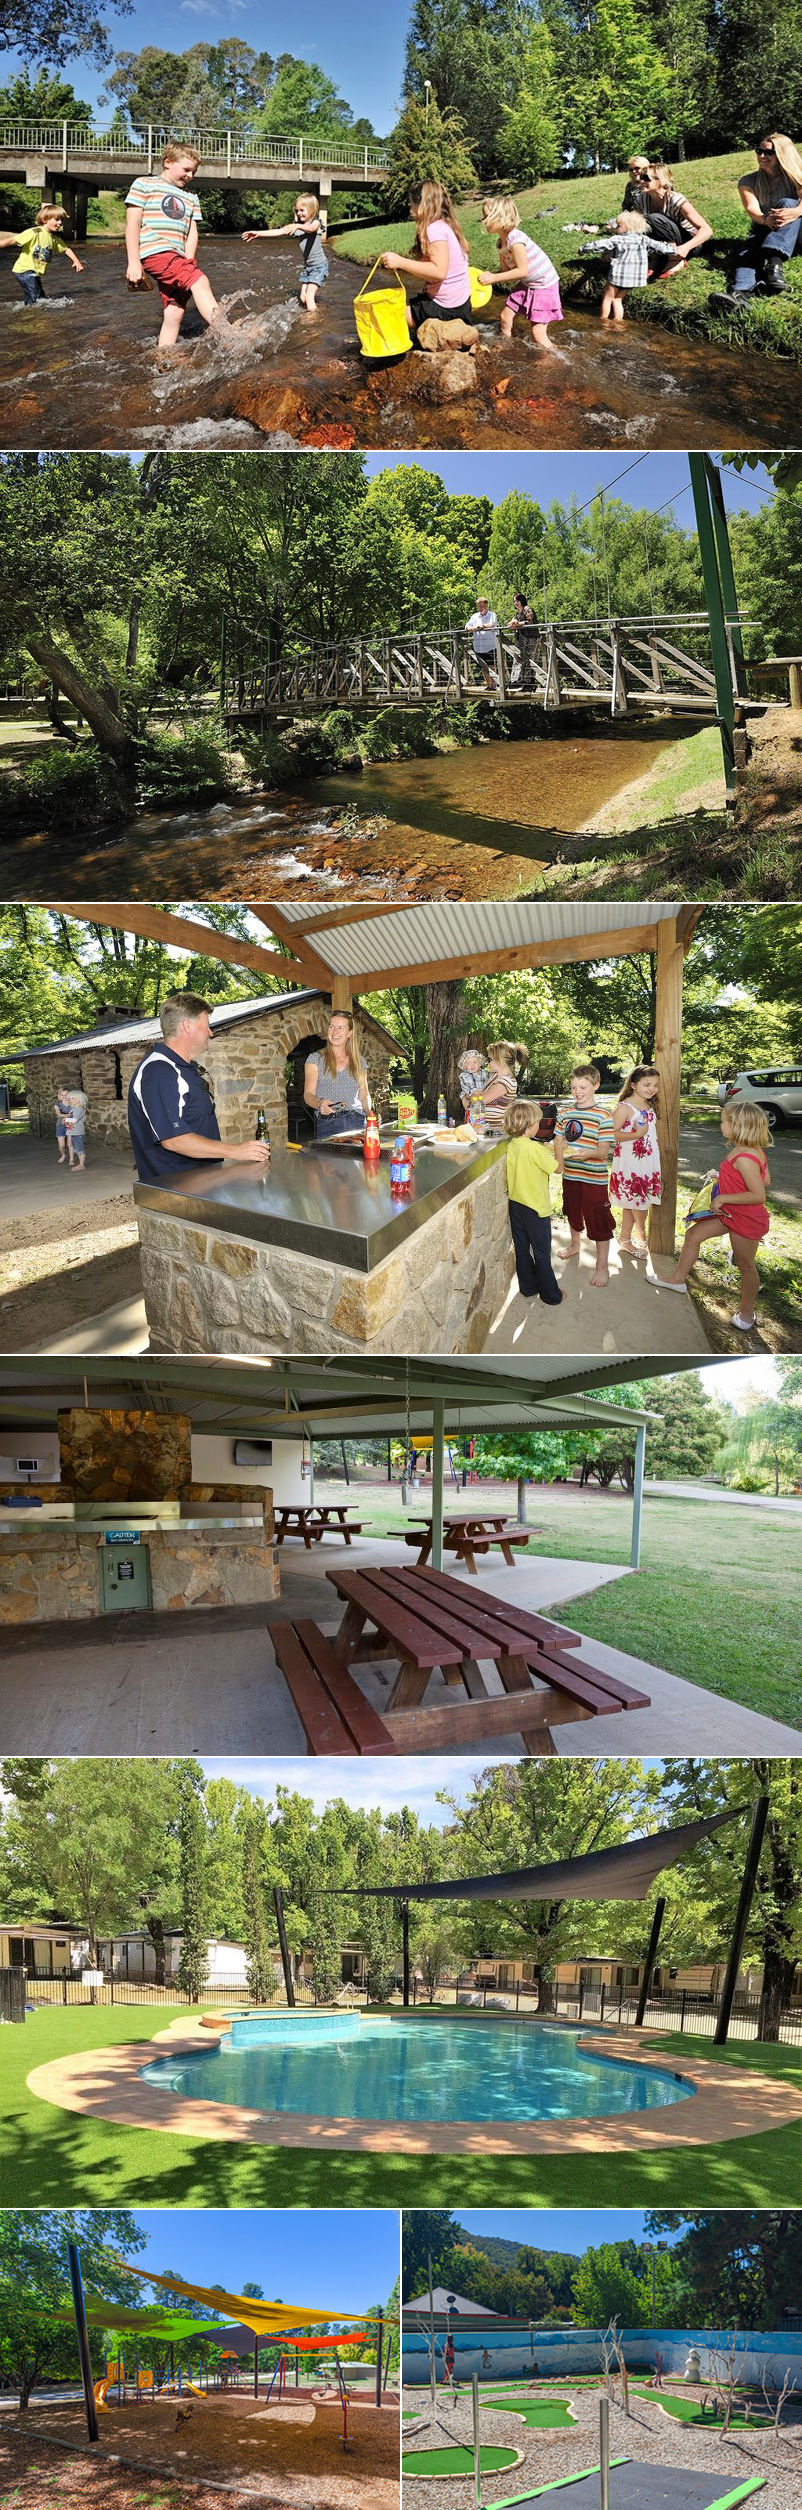 NRMA Bright Holiday Park - Grounds and facilities